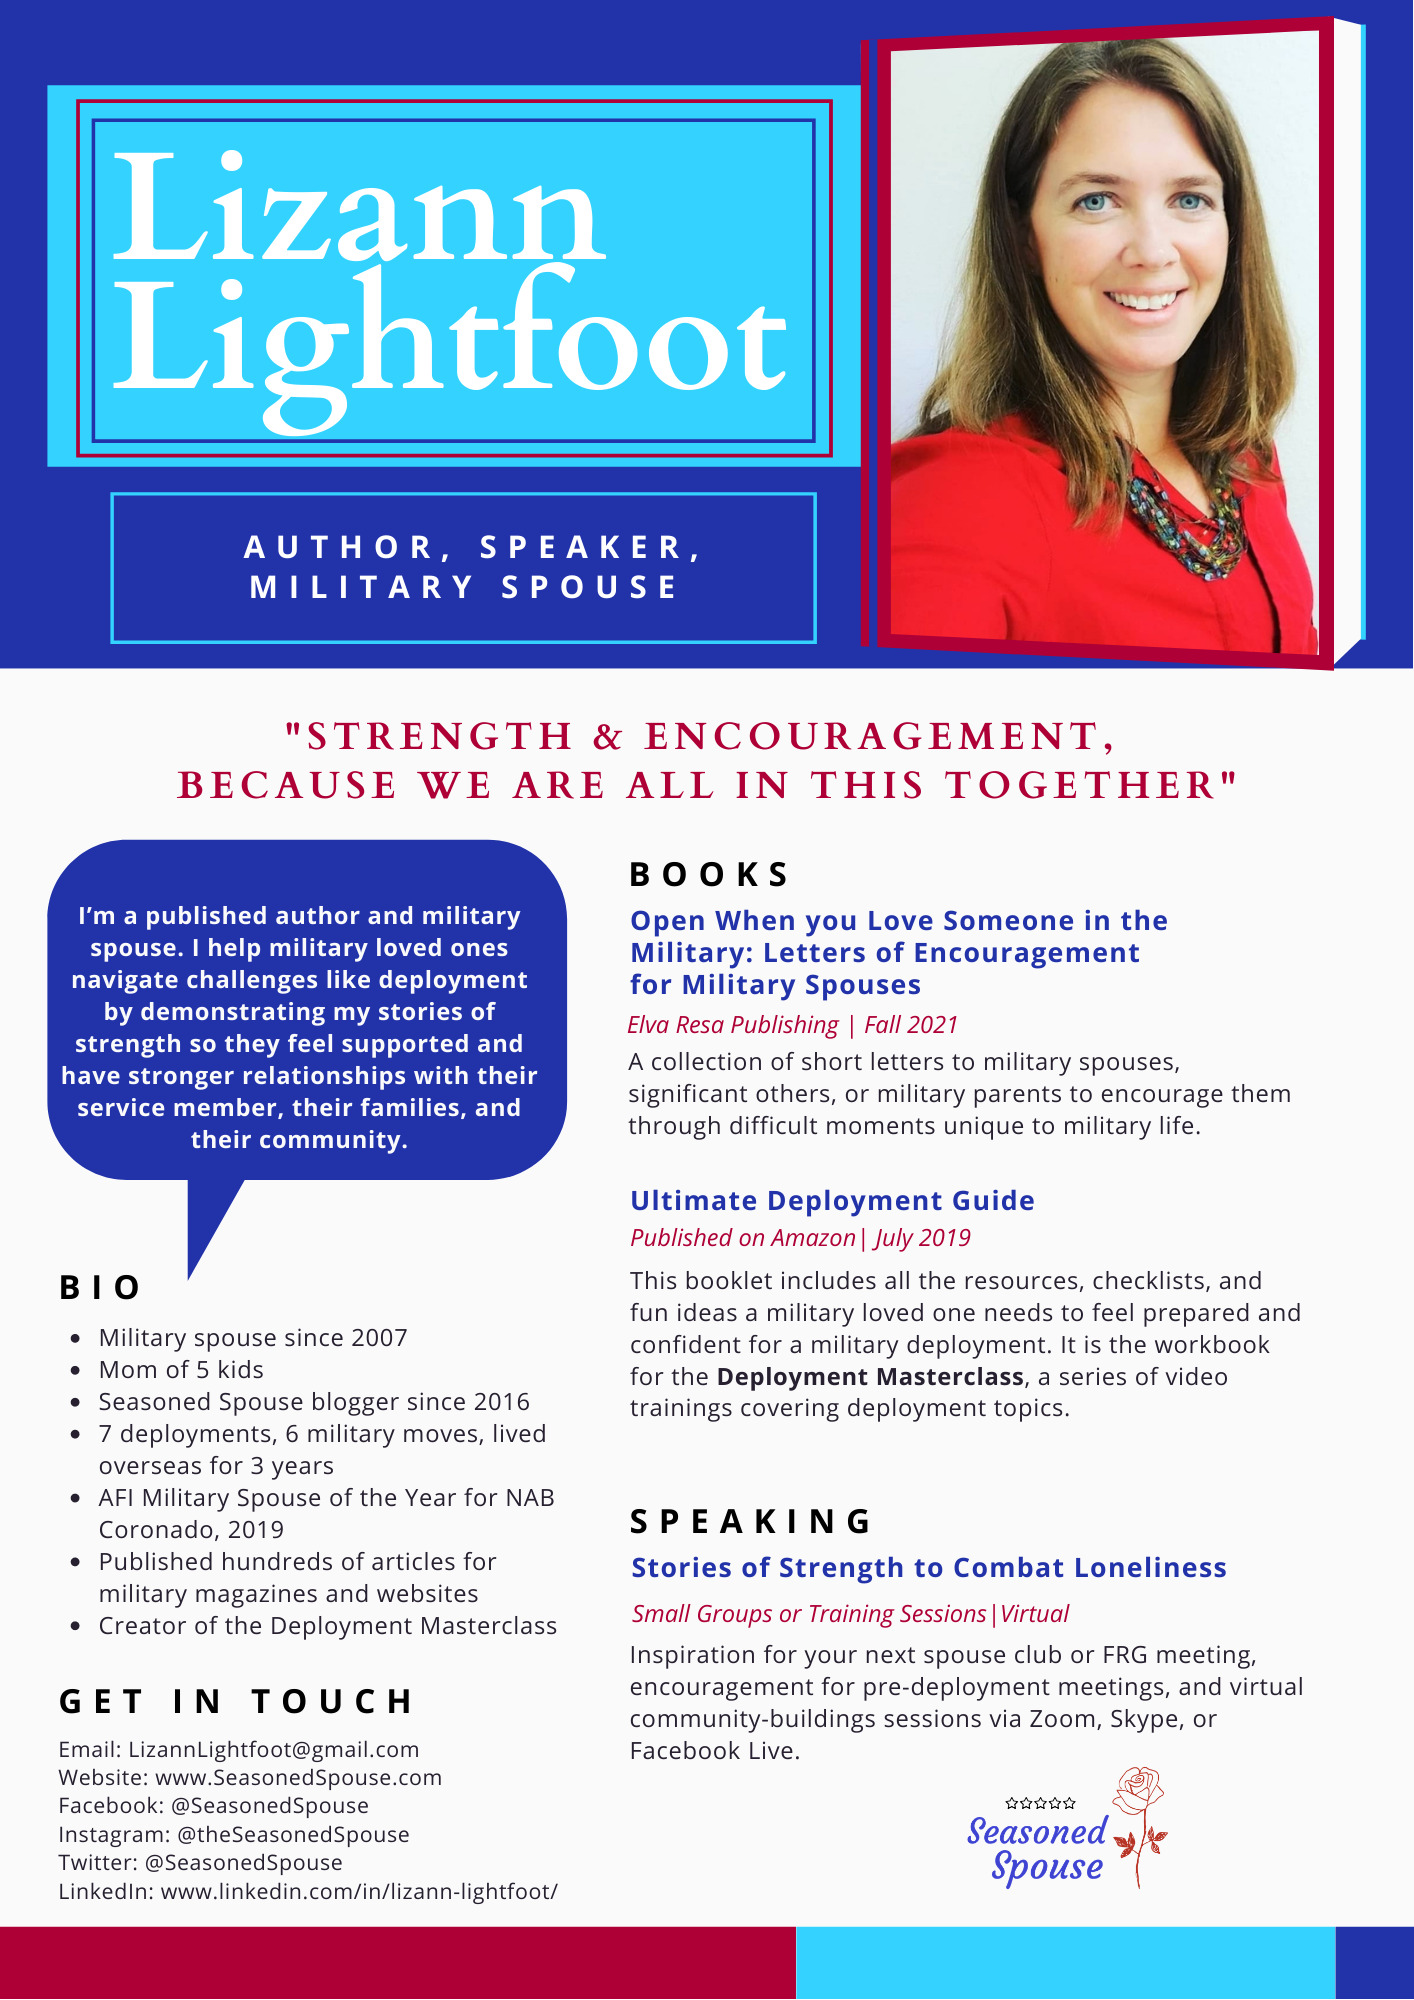 Lizann Lightfoot profile photo